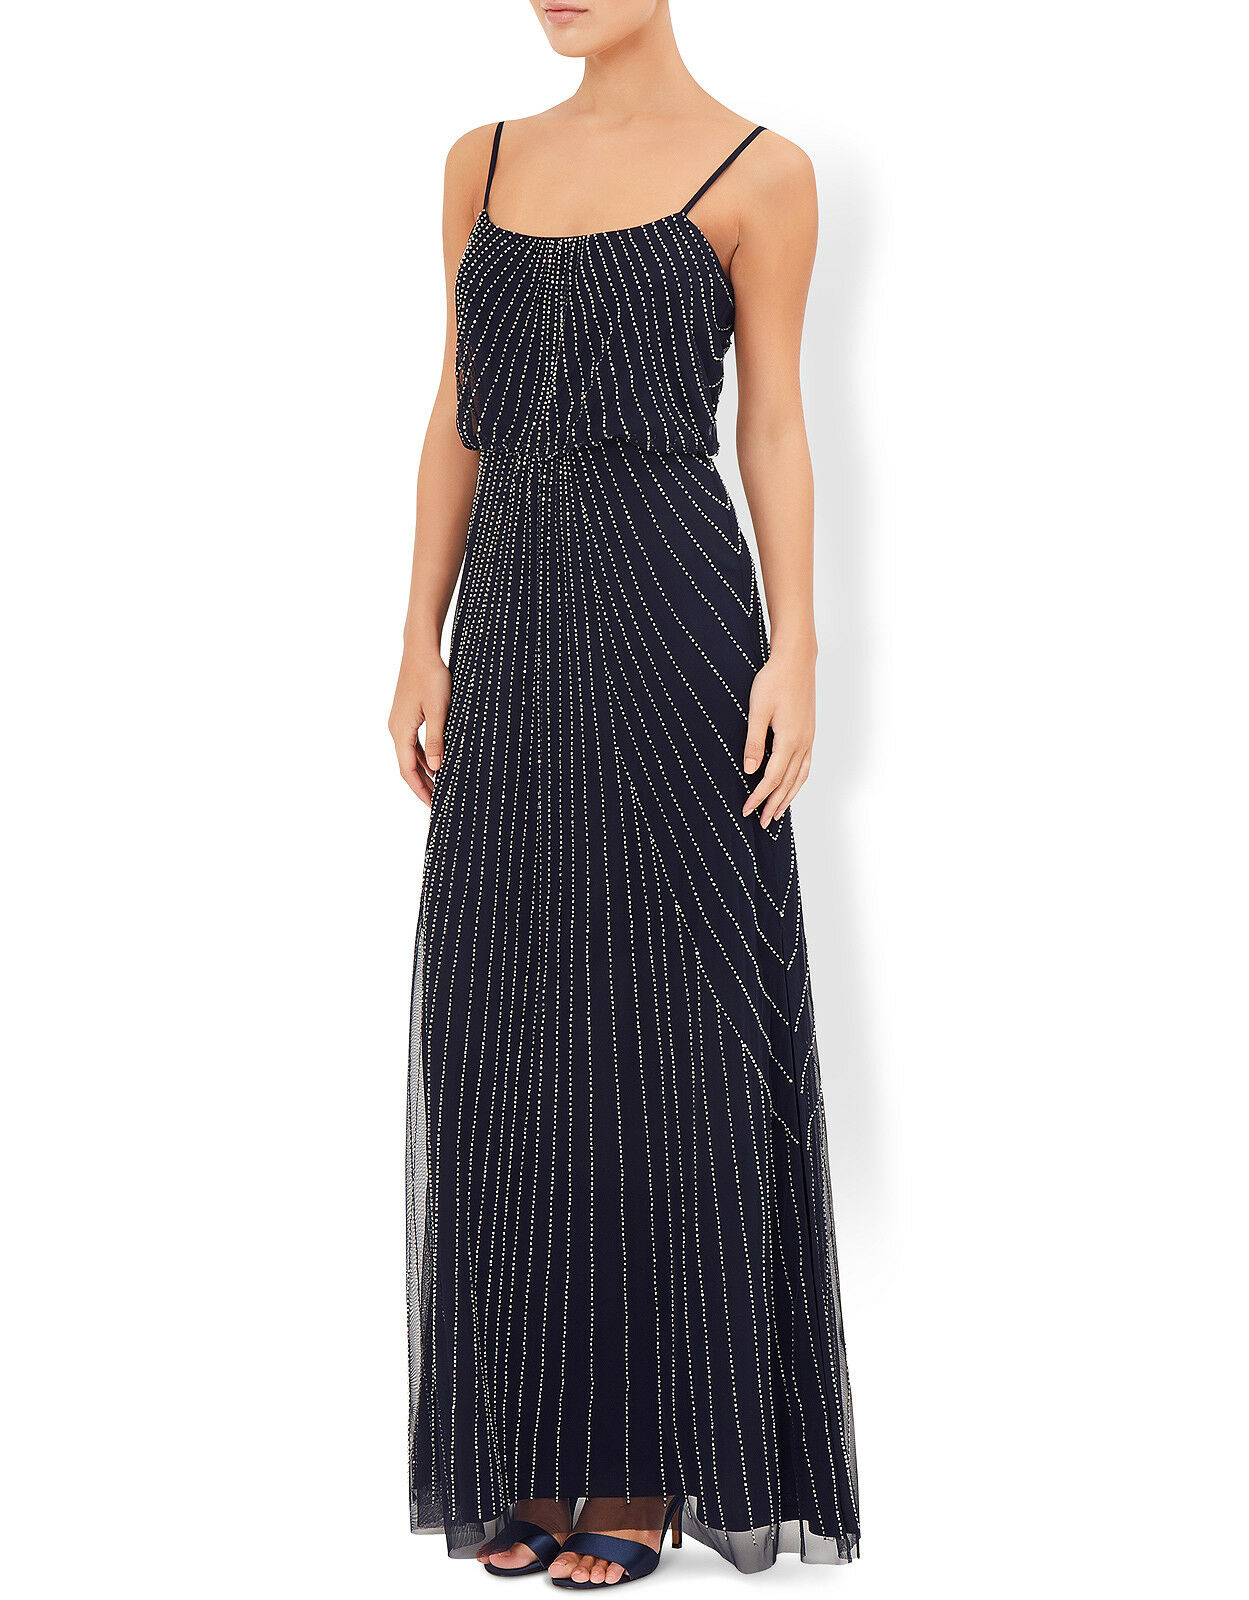 REDUCED   BNWT MONSOON LINNEA NAVY blueE EMBELLISHED MAXI DRESS Size 18 RRP